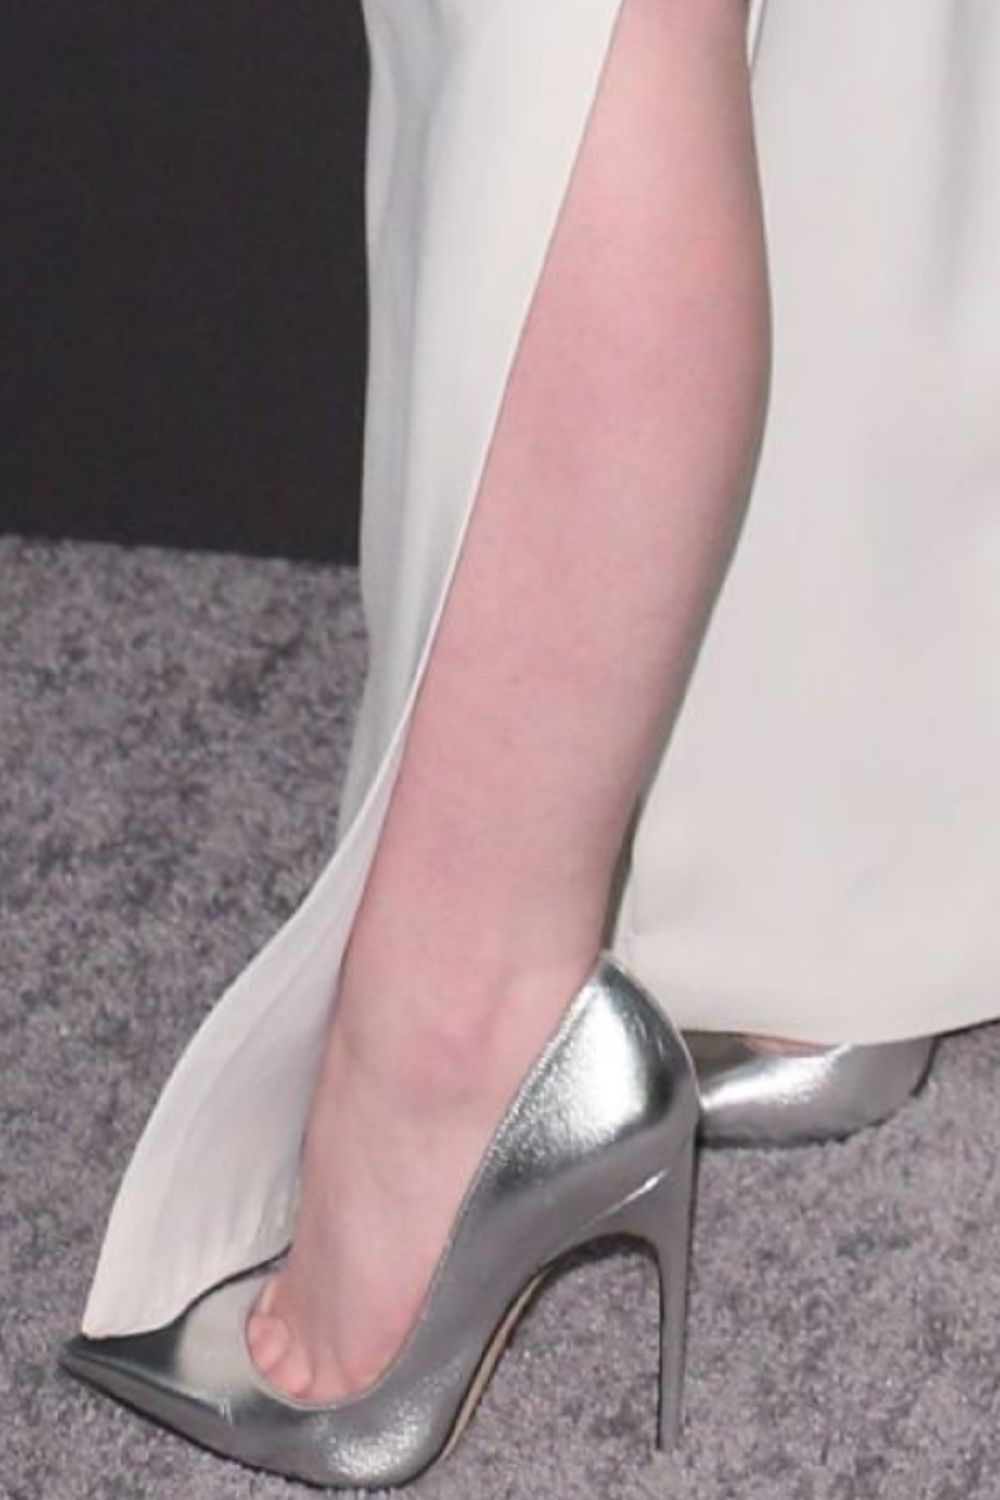 Picture of Sabrina Carpenter shoes